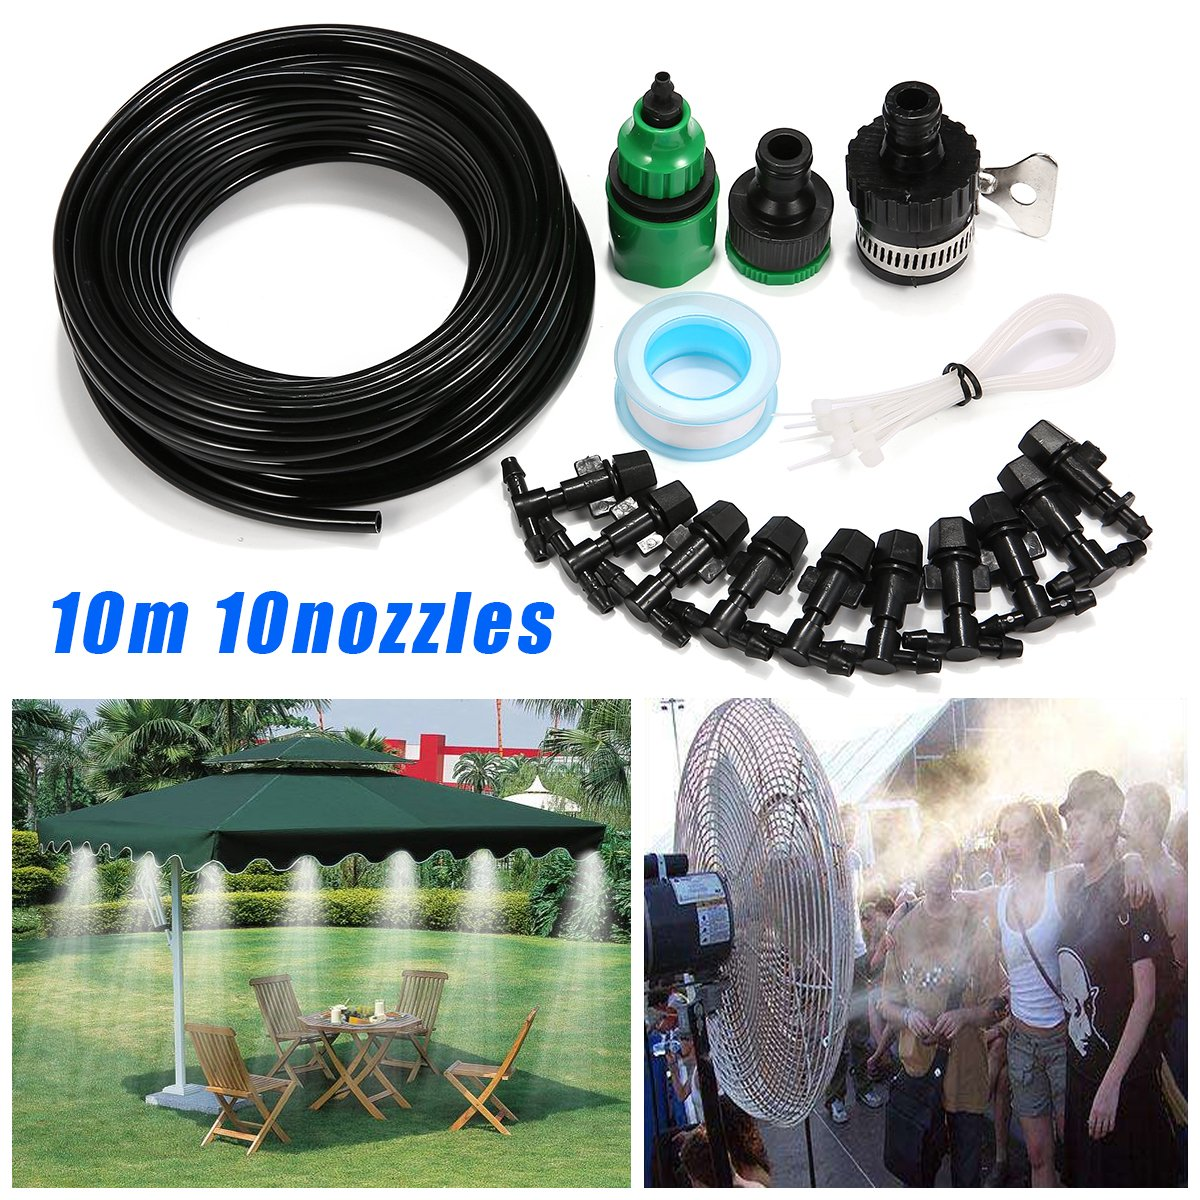 heiinsog 10m Outdoor Misting Cooling System, Patio Fan Misting kit, with User Manual.